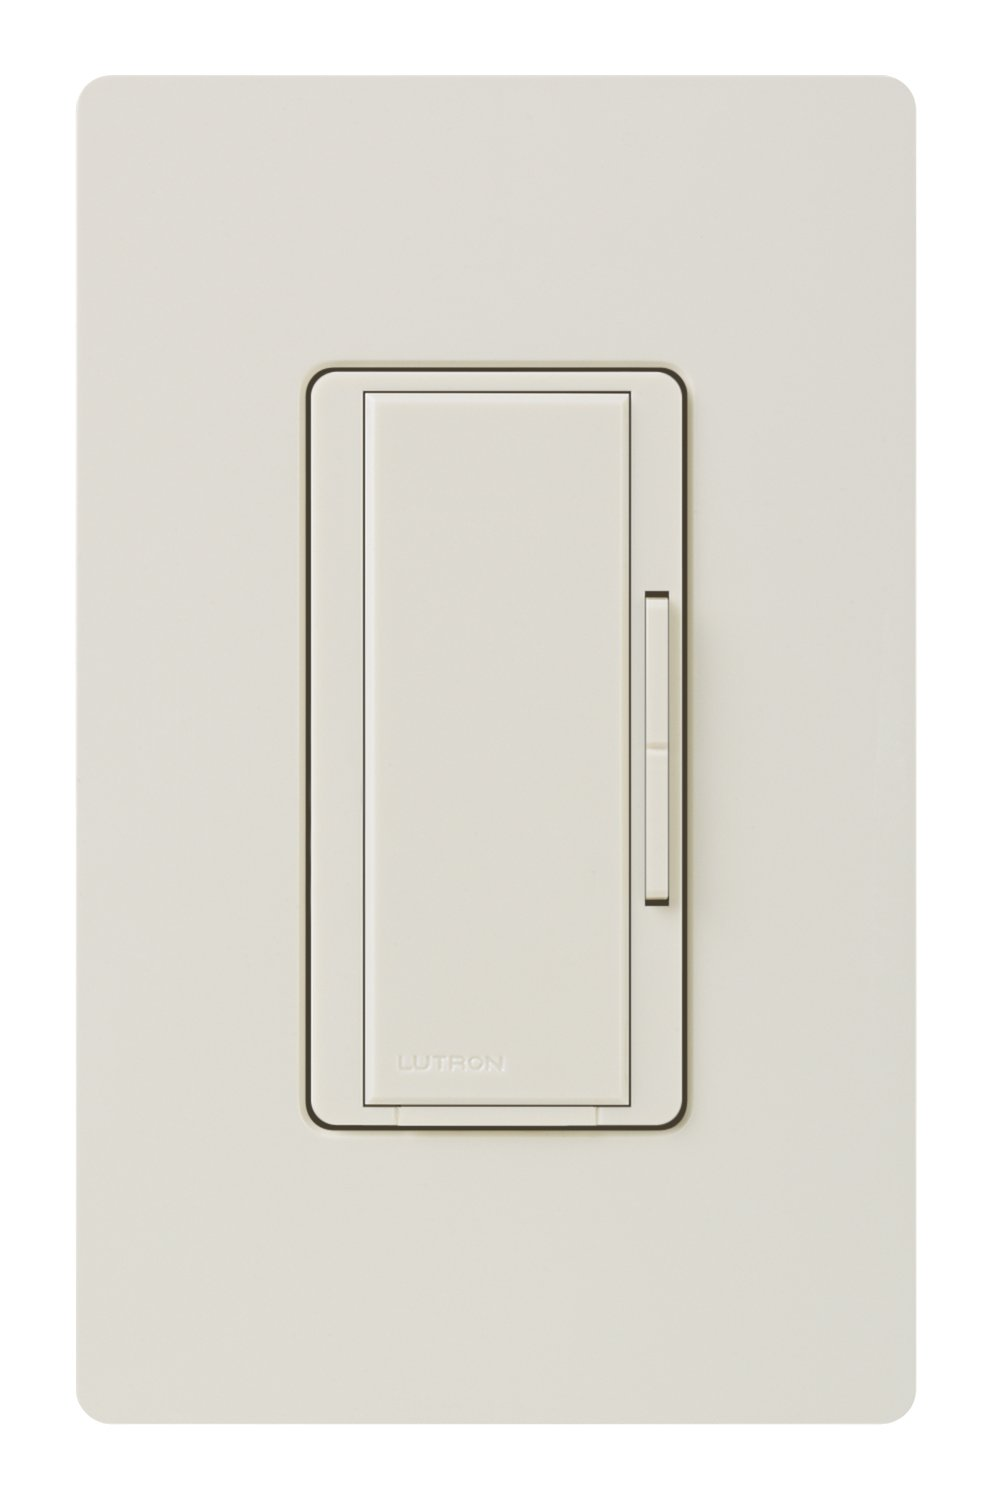 Lutron MA-S8AM-LA 8-Amp Maestro Digital Light Switch, Light Almond ...